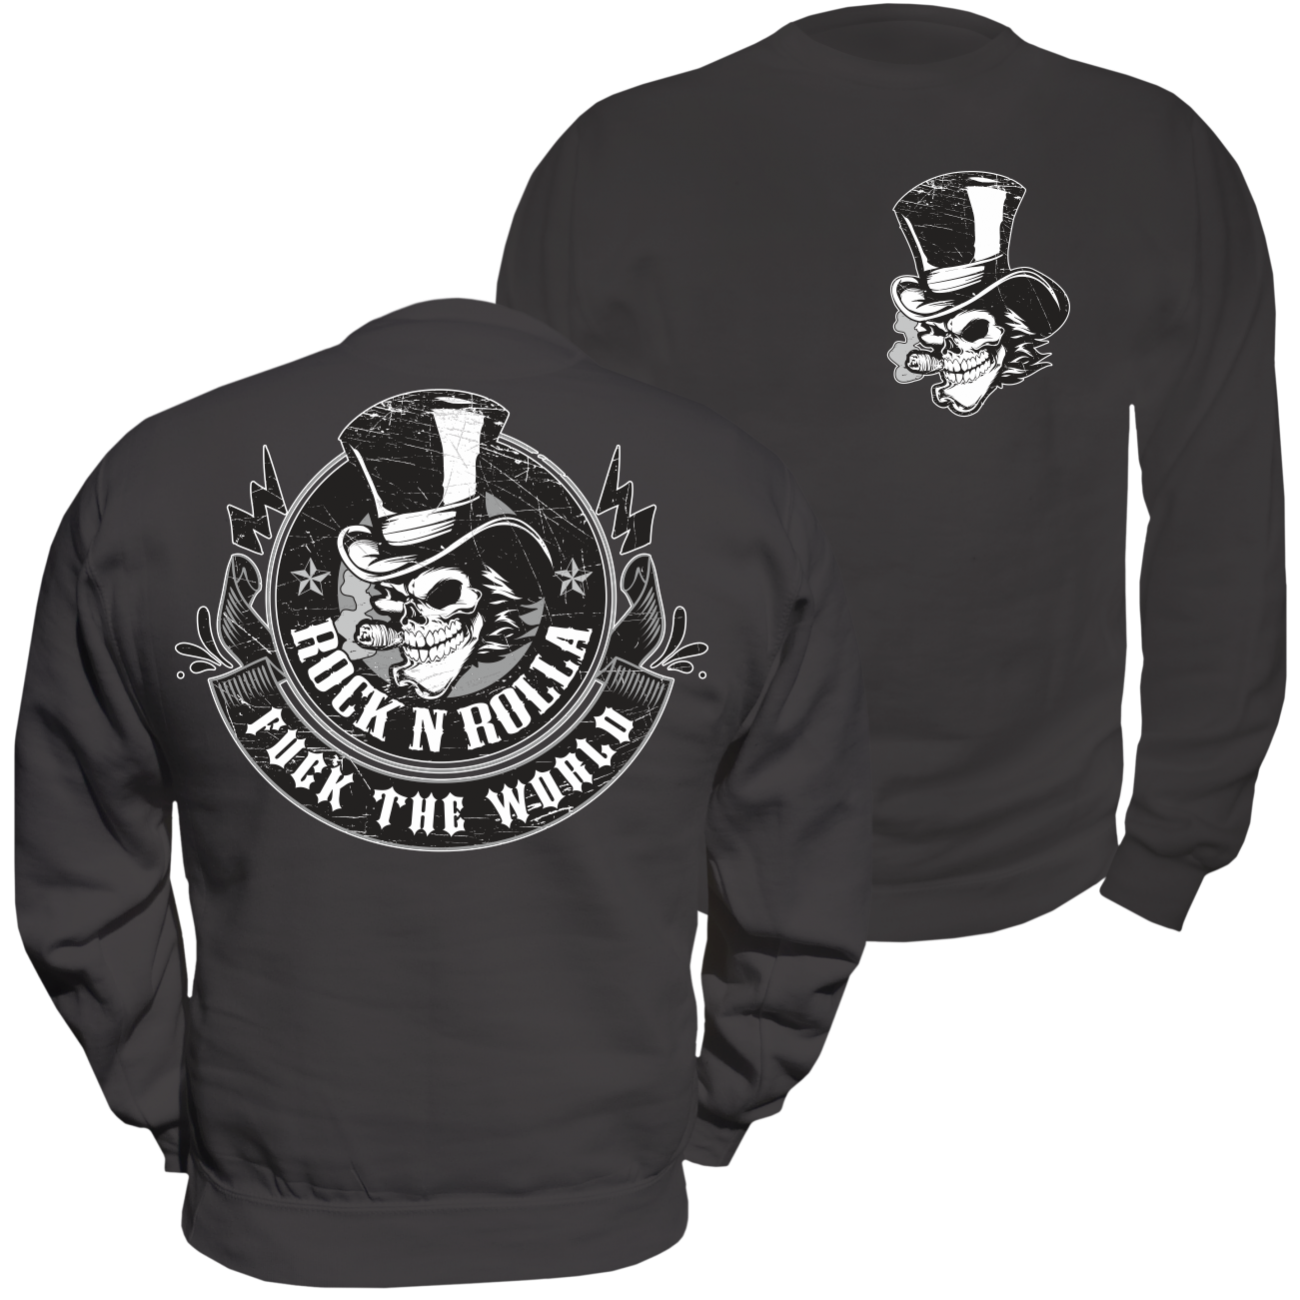 Pullover Sweatshirt ROCK N ROLLA hot rod rock'n roll rockabilly fuck the world